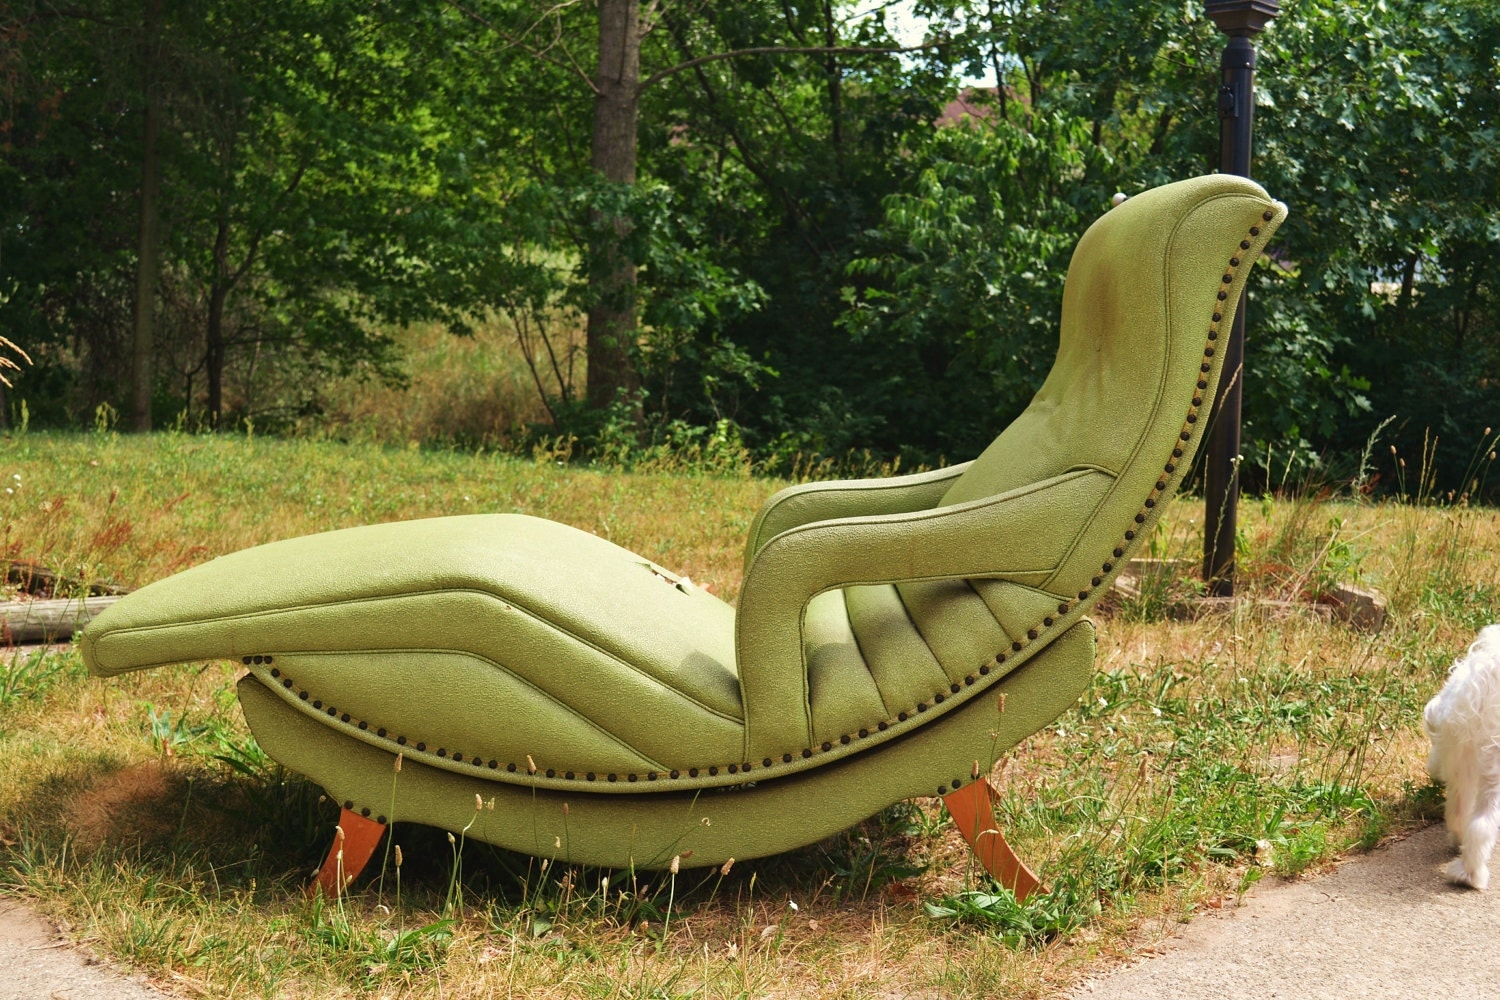 Green Contour Chair Lounge From 1956 Model 100 By Weirdsville